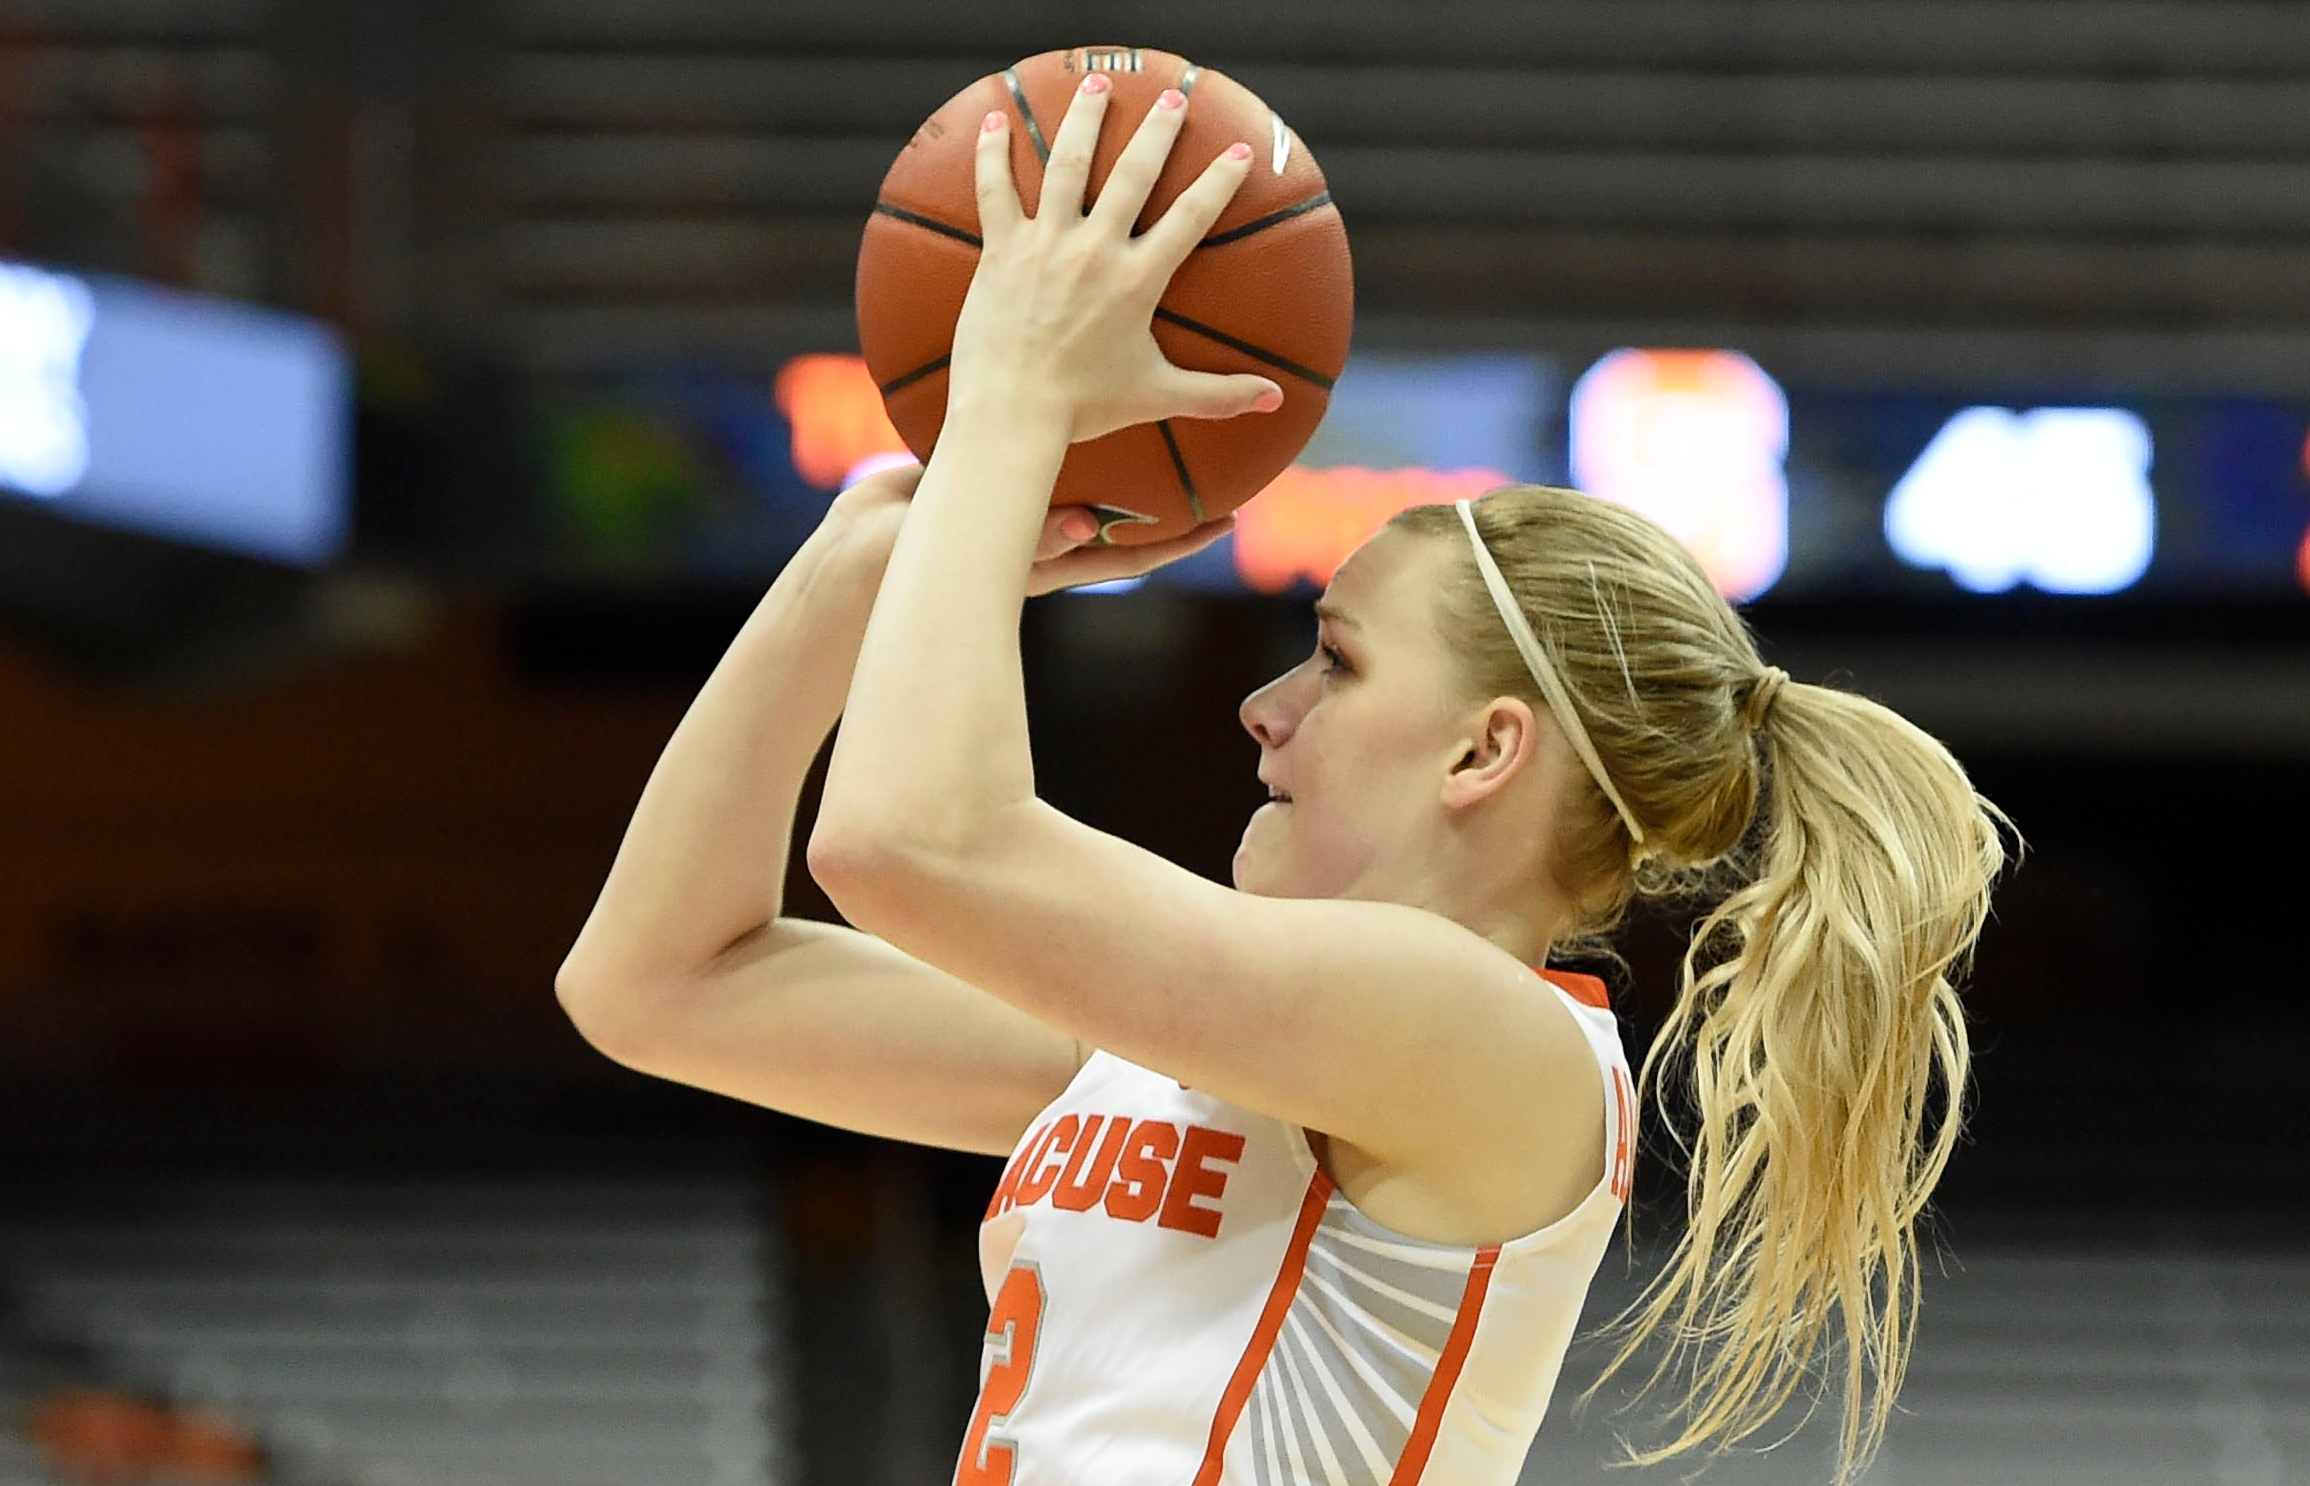 Newest 3-threat for Syracuse women's basketball just warming up